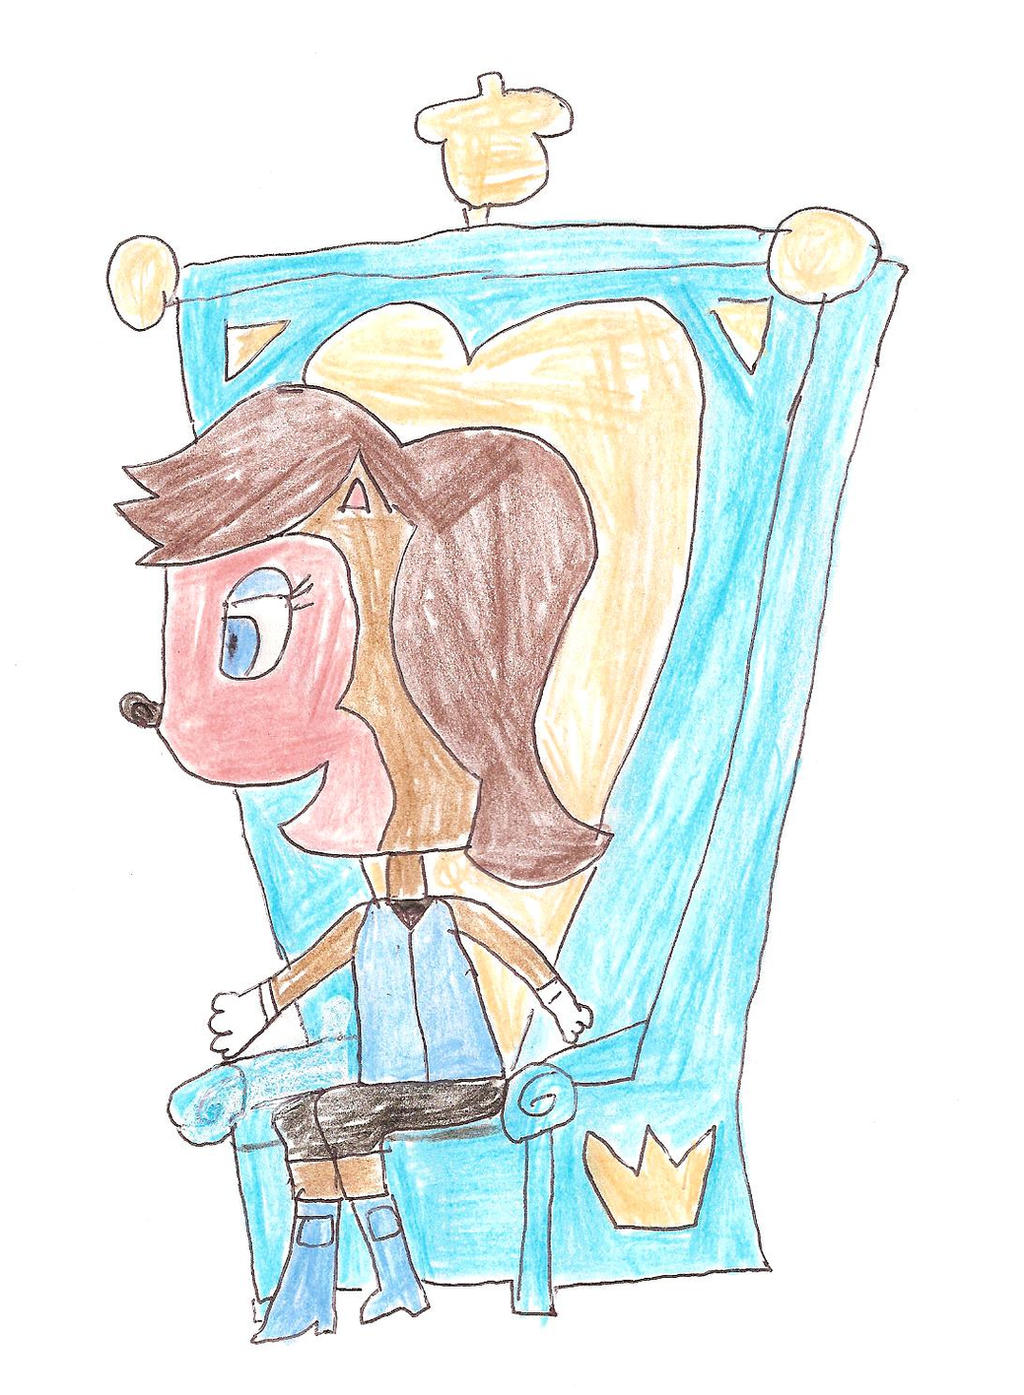 Sally Acorn sitting at her throne chair by dth1971